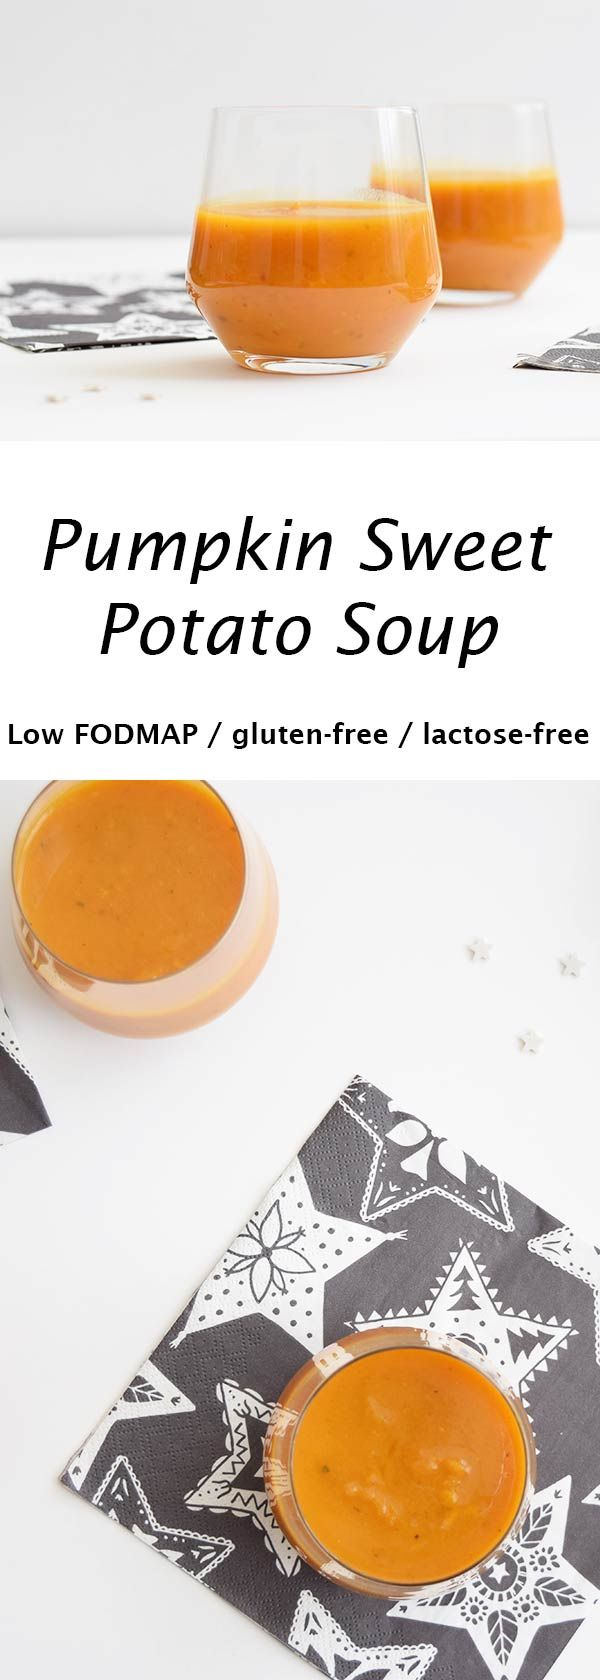 A delicious pumpkin sweet potato soup that makes a perfect starter for Christmas dinner. Low FODMAP, gluten-free and lactose-free